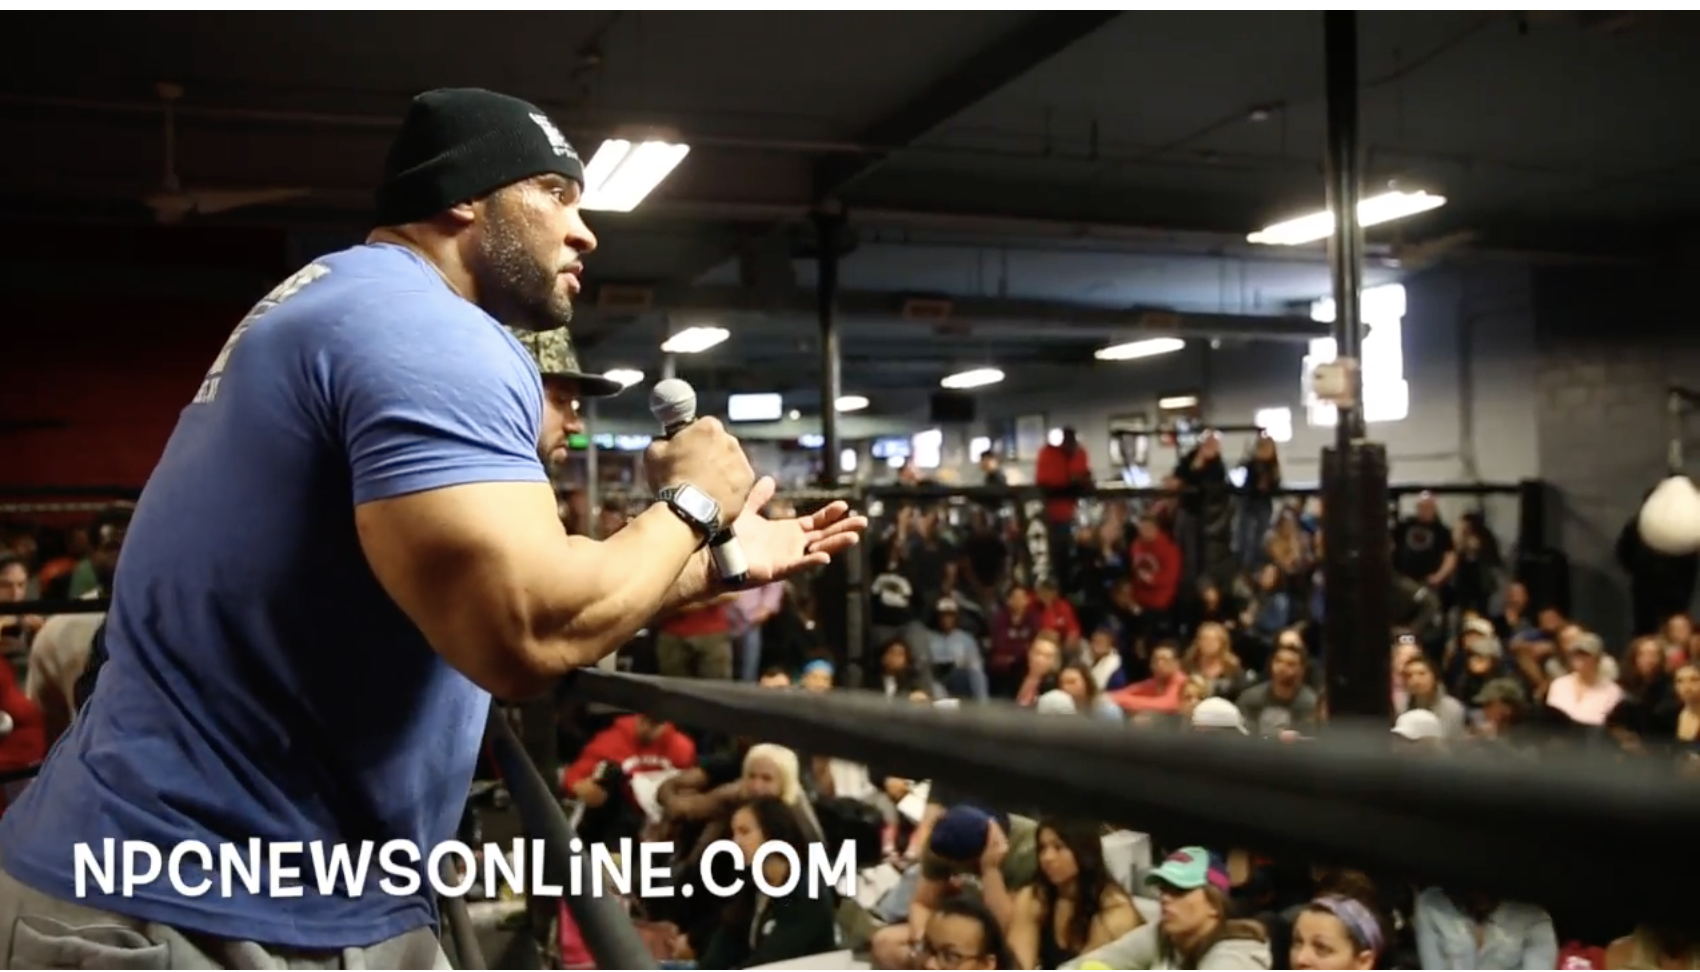 IFBB Pro Bodybuilder's Jon Delarosa & IFBB Pro Juan Morel At The 2018 Bev Francis NPC Workshop doing Q & A. Pt.2